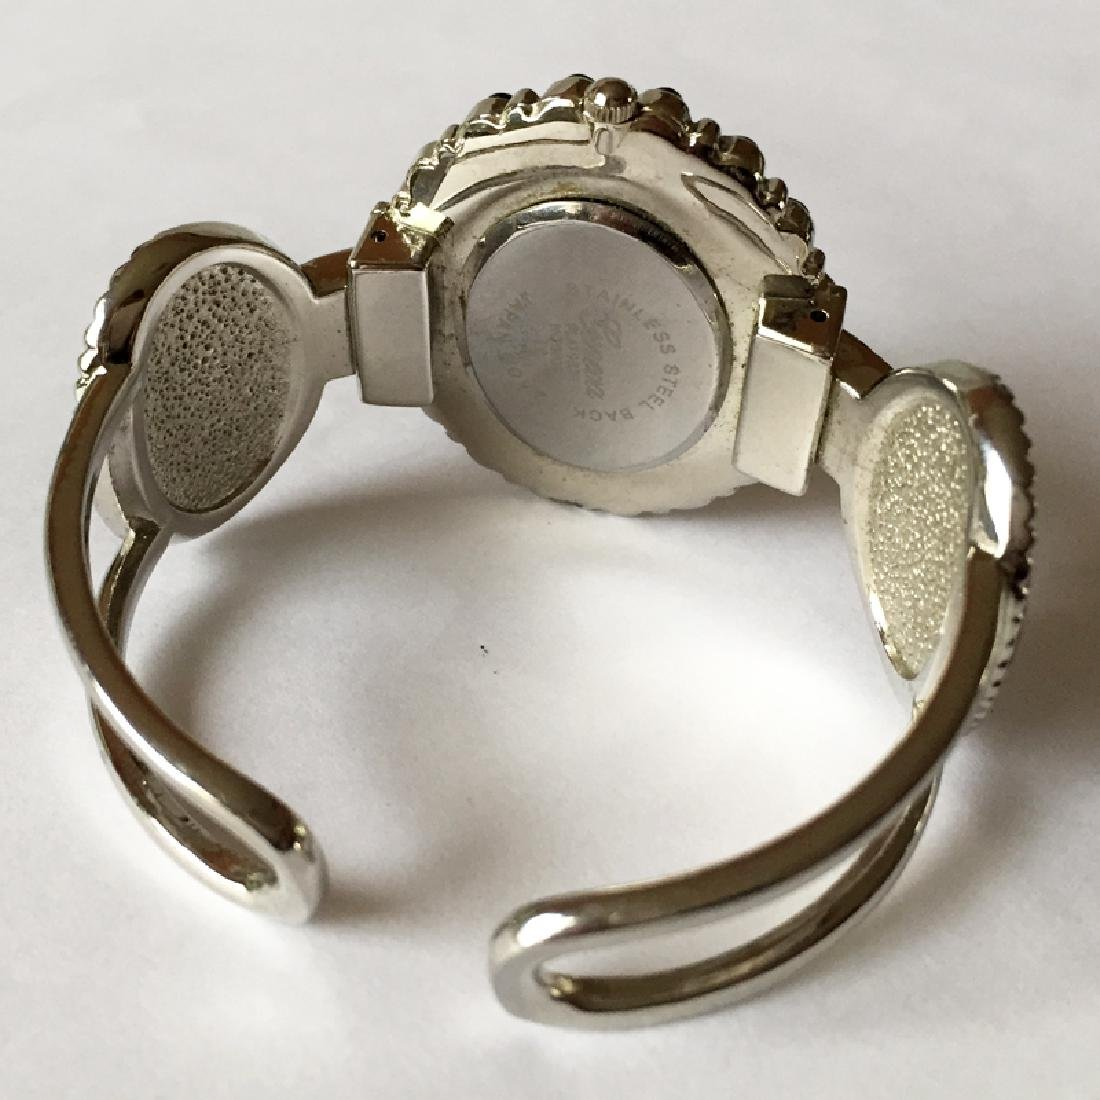 Cuff style bracelet with oval shape watch with MOP dial - 5